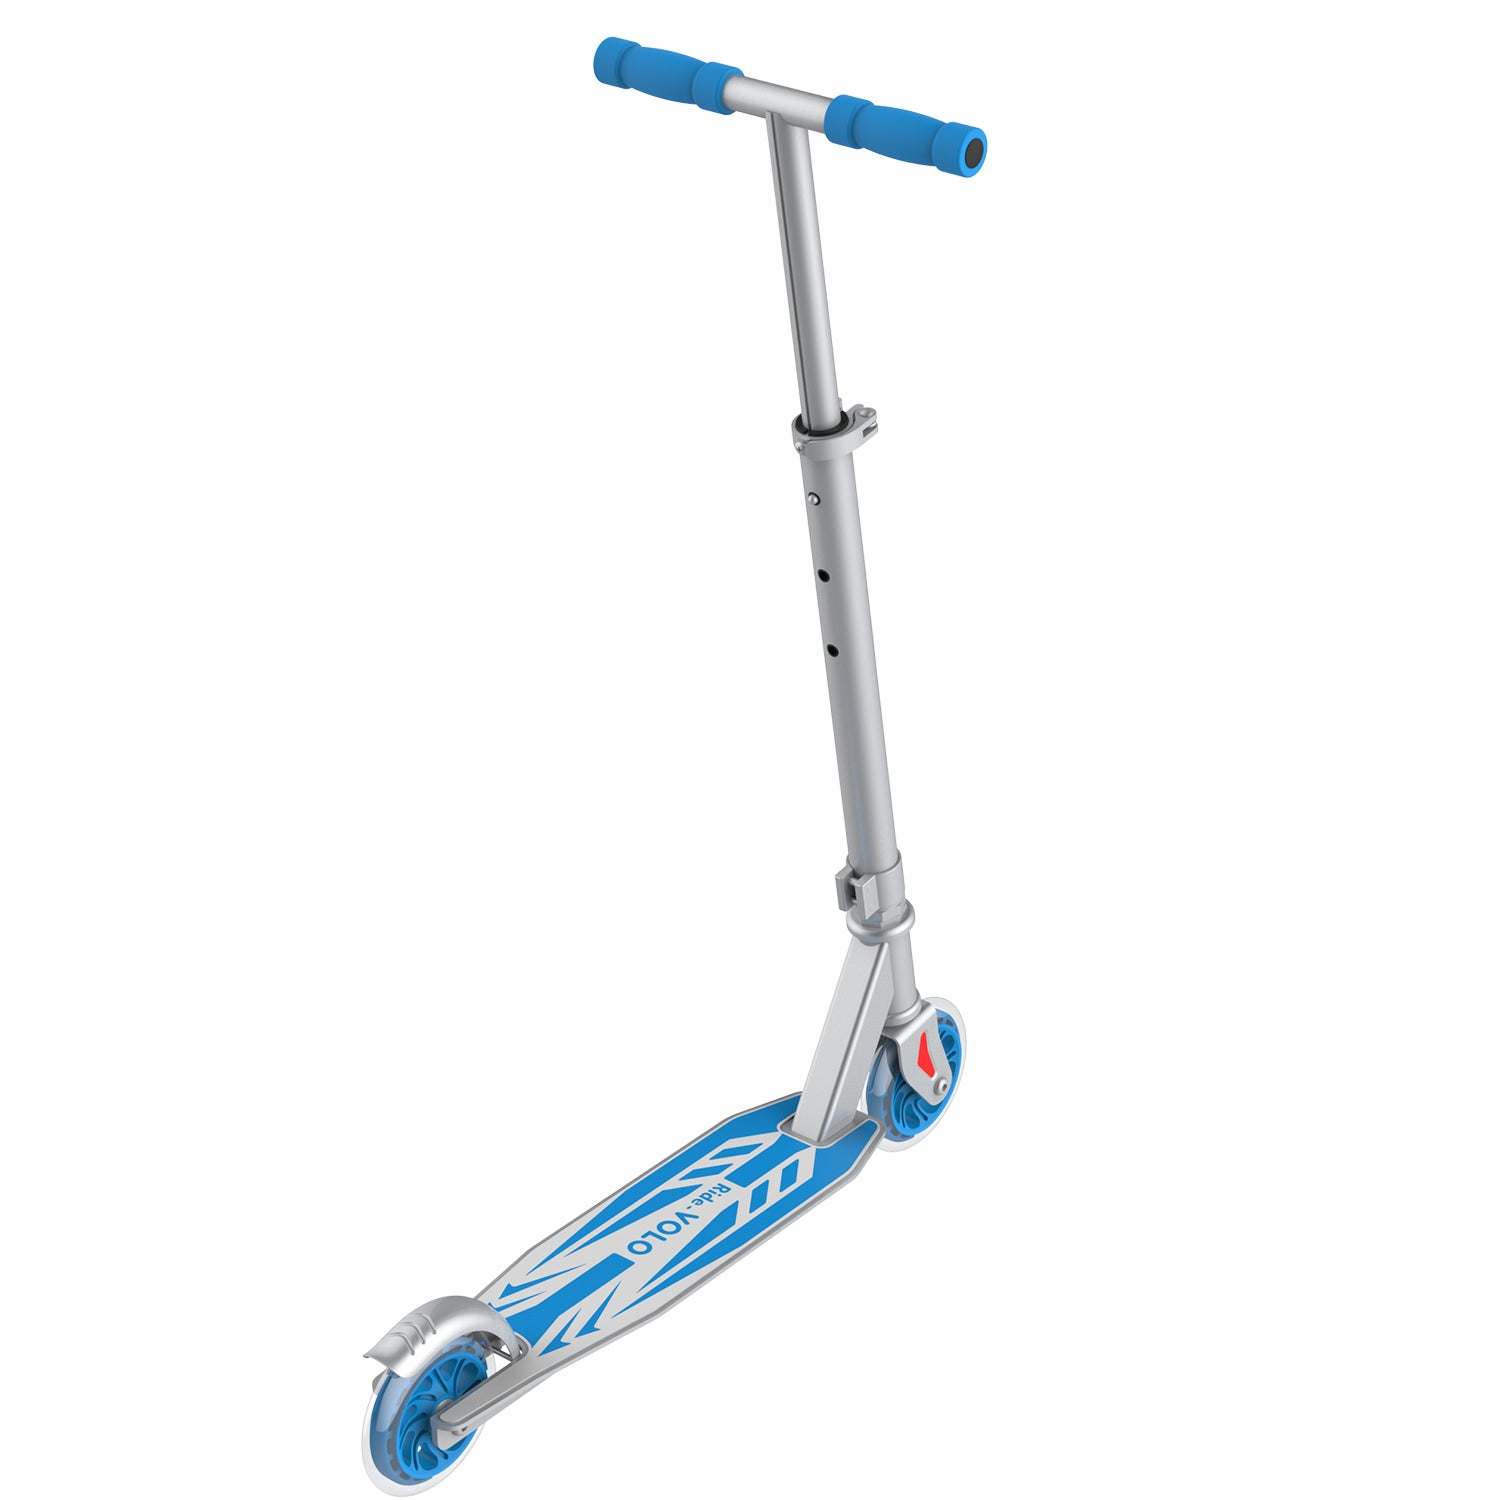 Silver k05 scooter away image